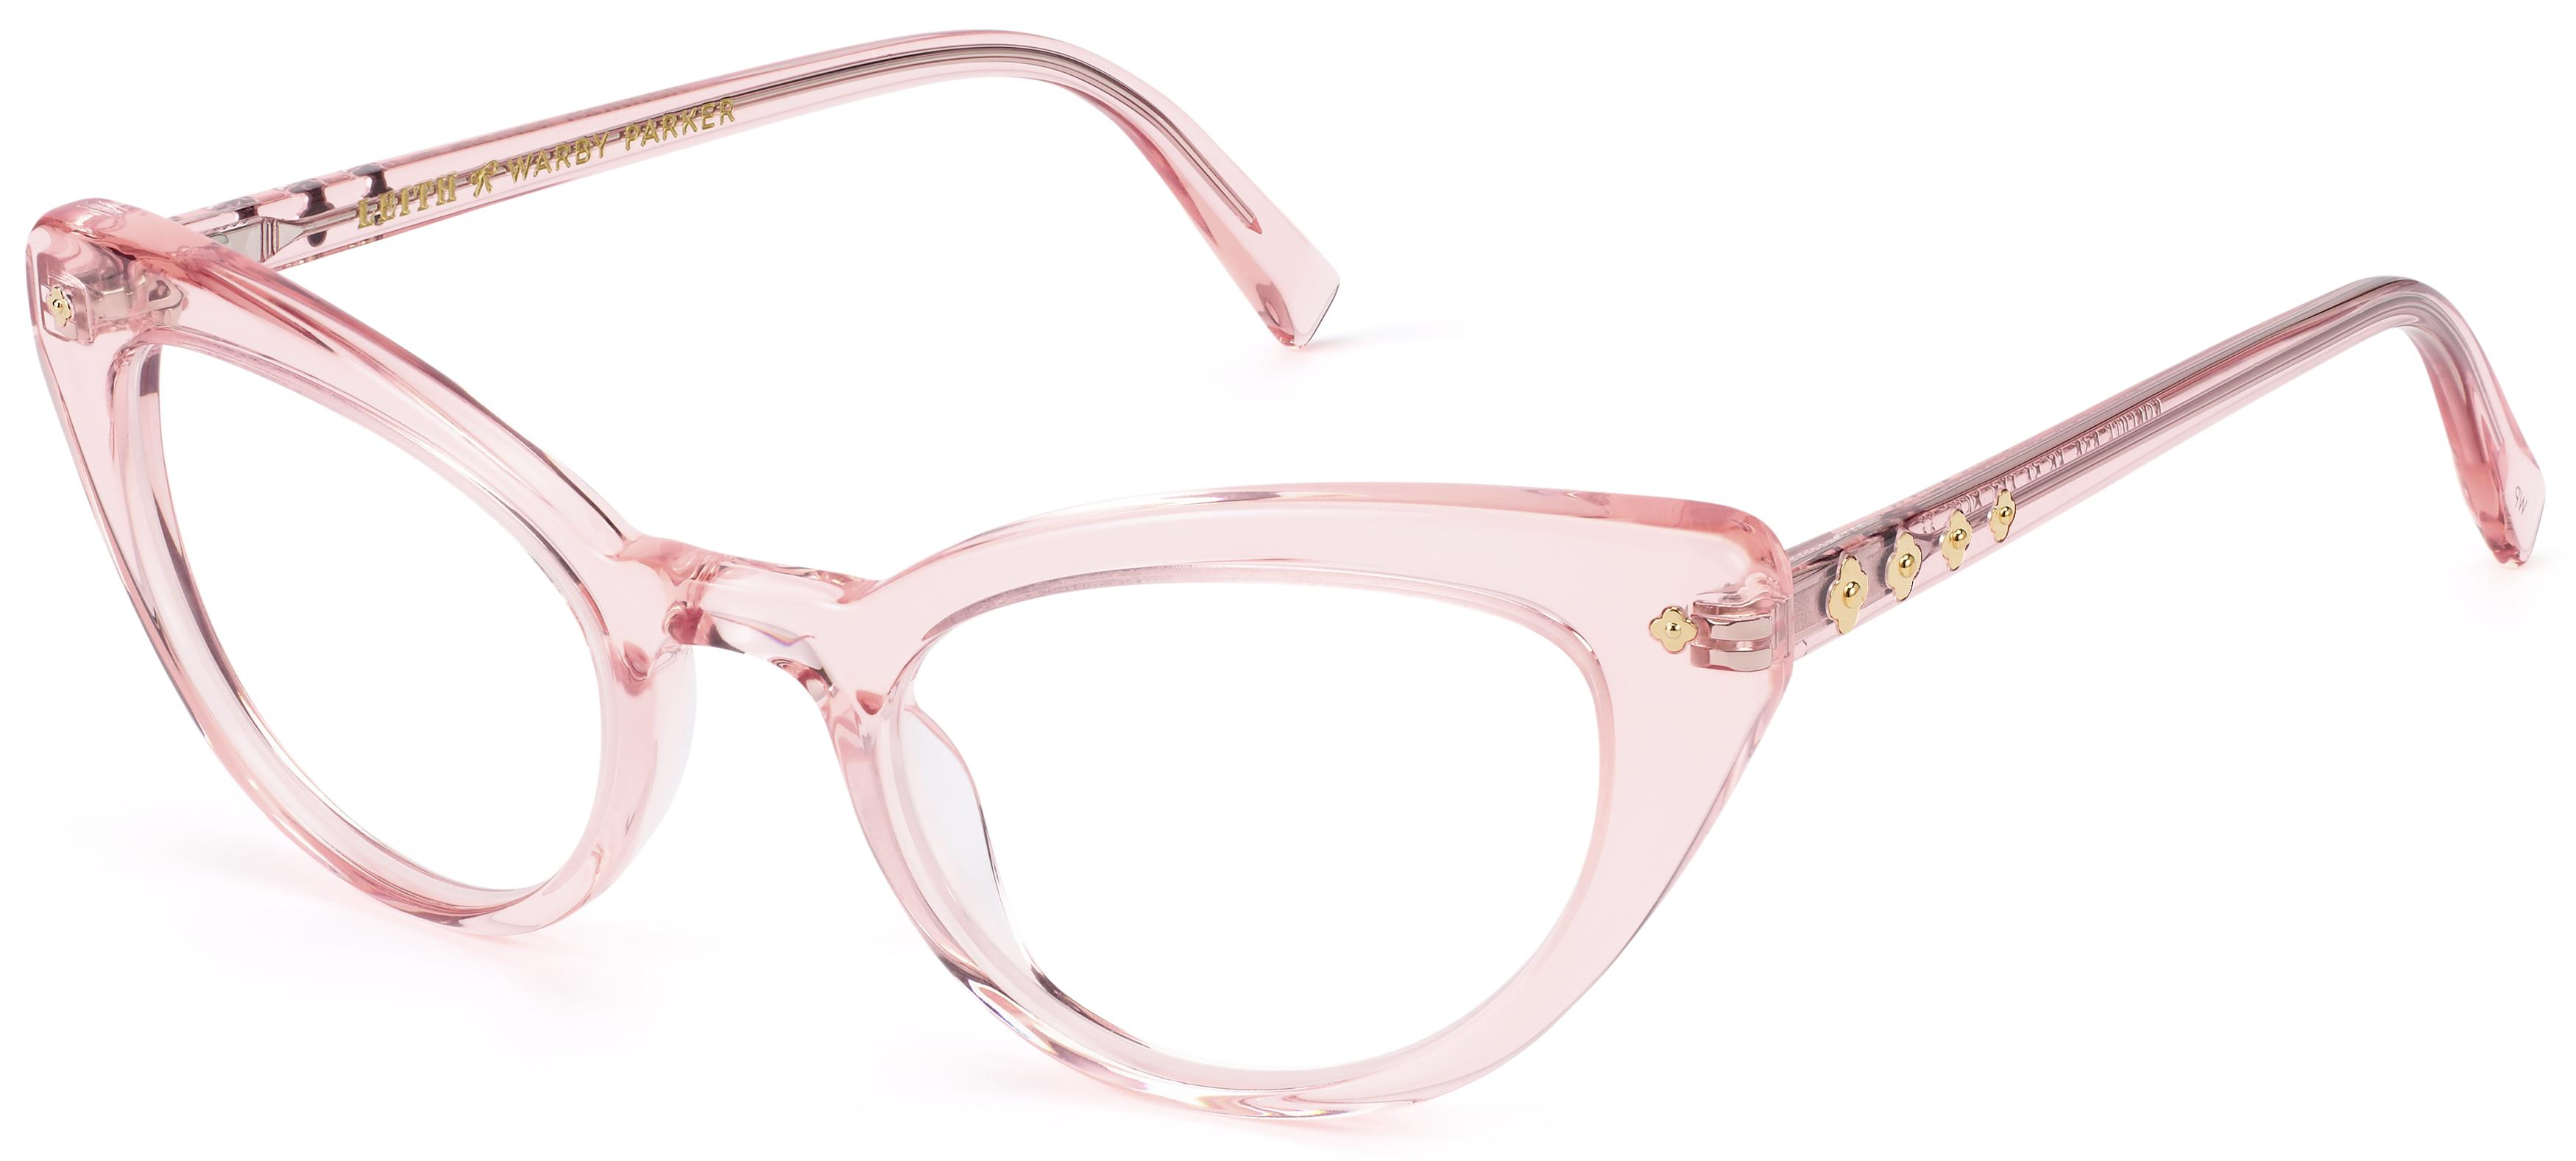 e1fd5cc36c Evelina is a vintage-inspired cat-eye designed by Leith Clark and peppered  with